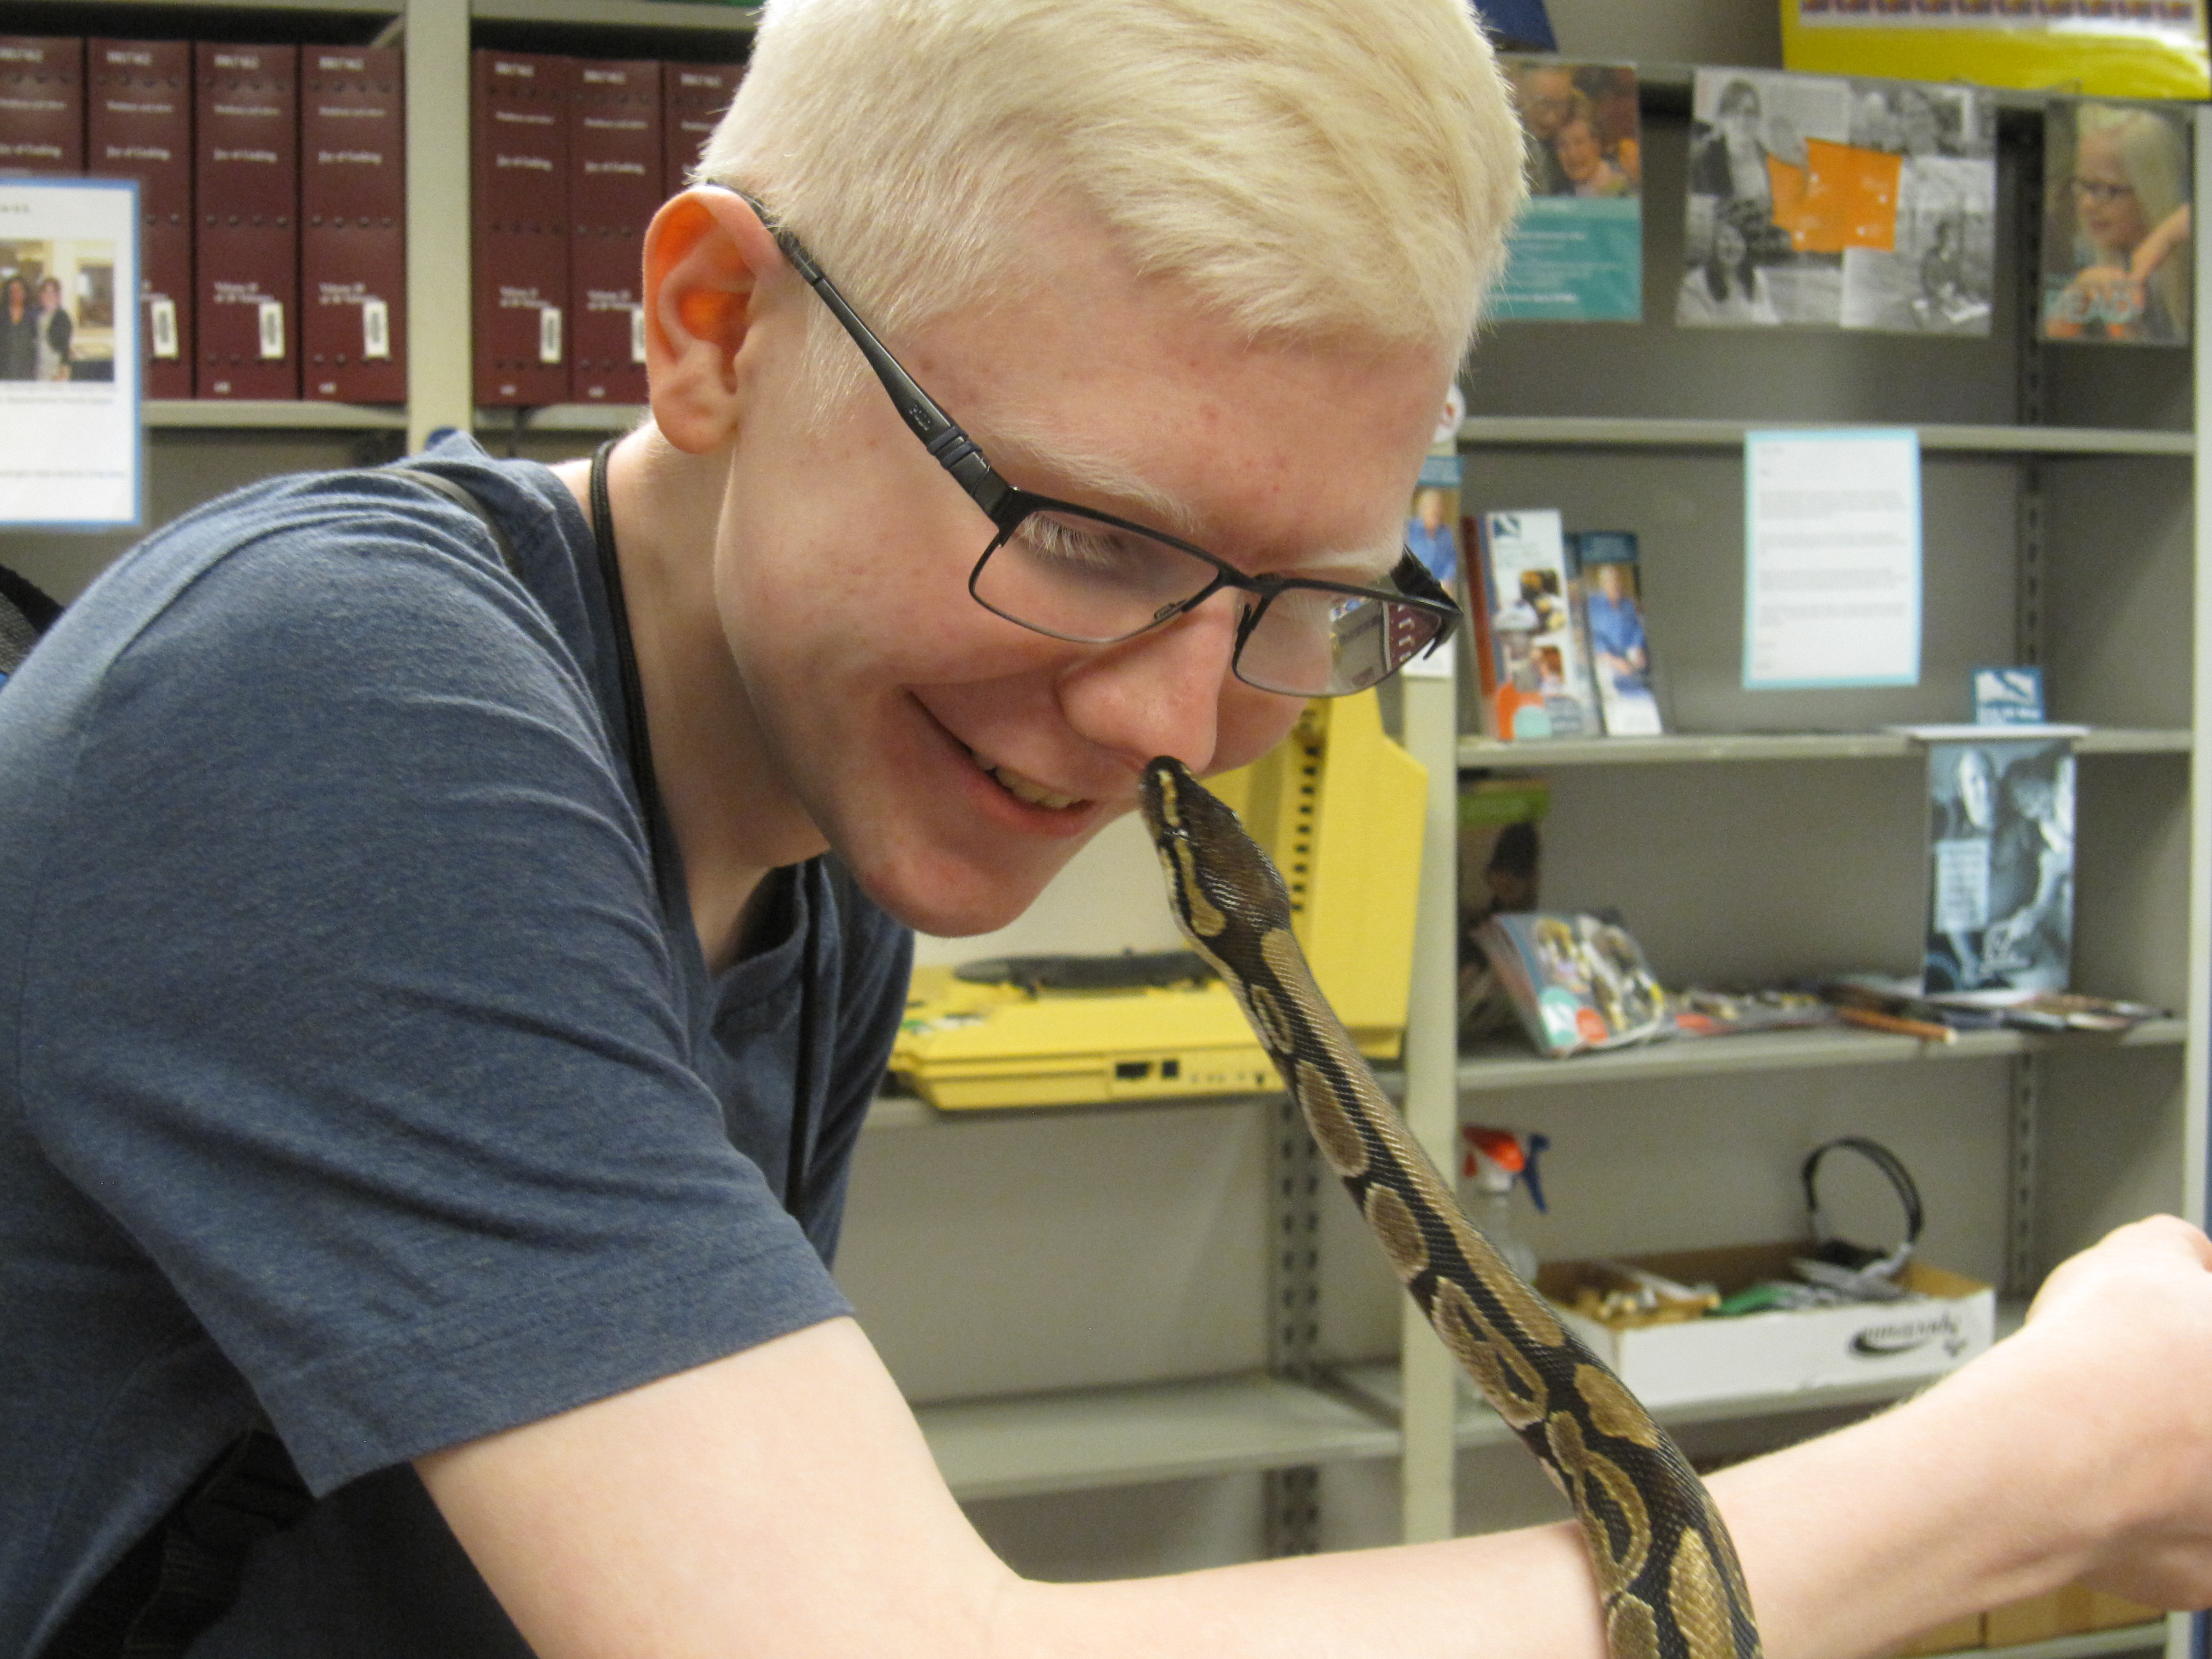 A teen patron smiles as a snake touches noses with him.